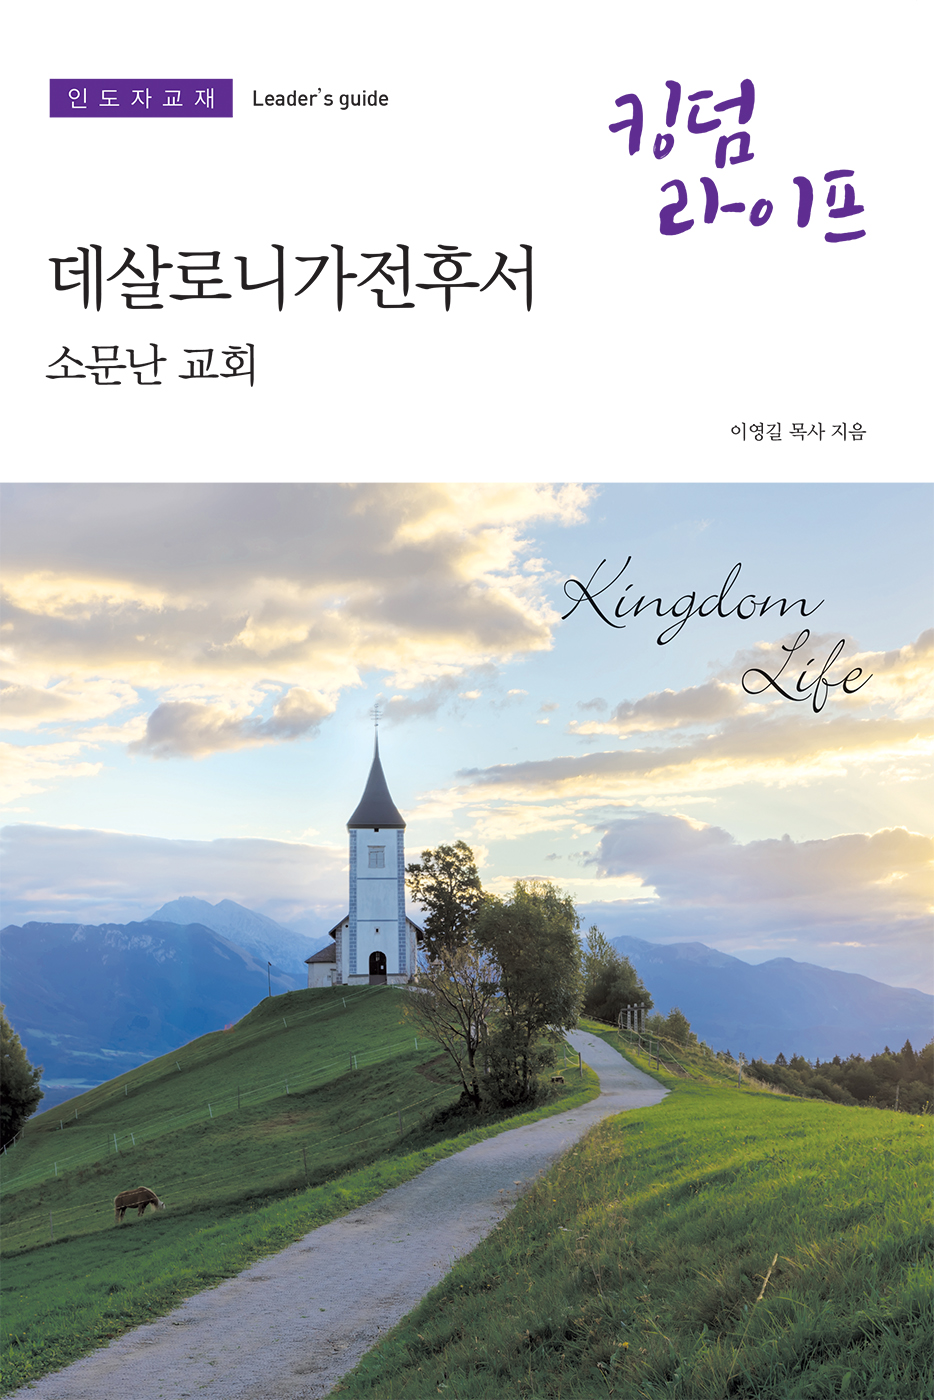 Korean Kingdom Life, Leader's Guide Fall 2019